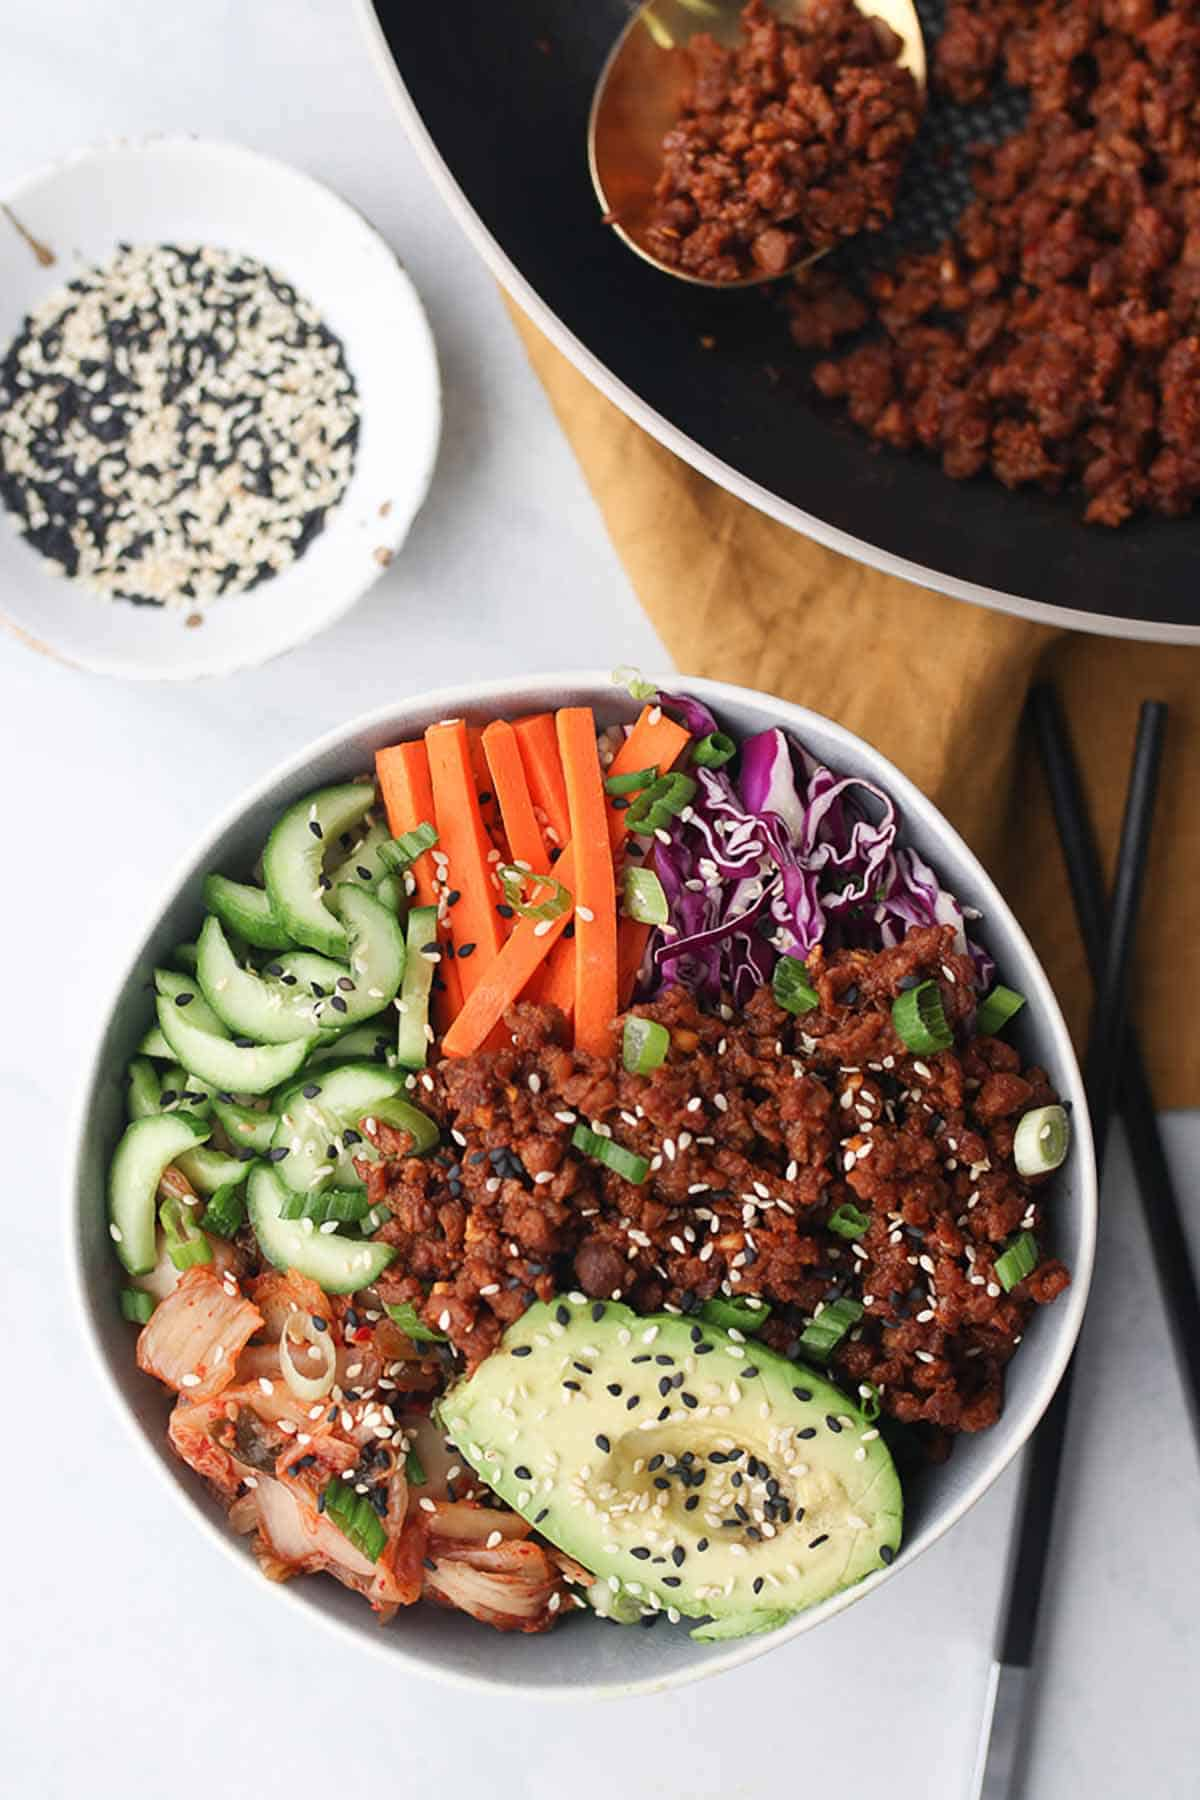 Birds eye view of vegan buddha bowl garnished with green onion and sesame seed with a bowl of sesame seeds in the background and two chopsticks laying on the side.